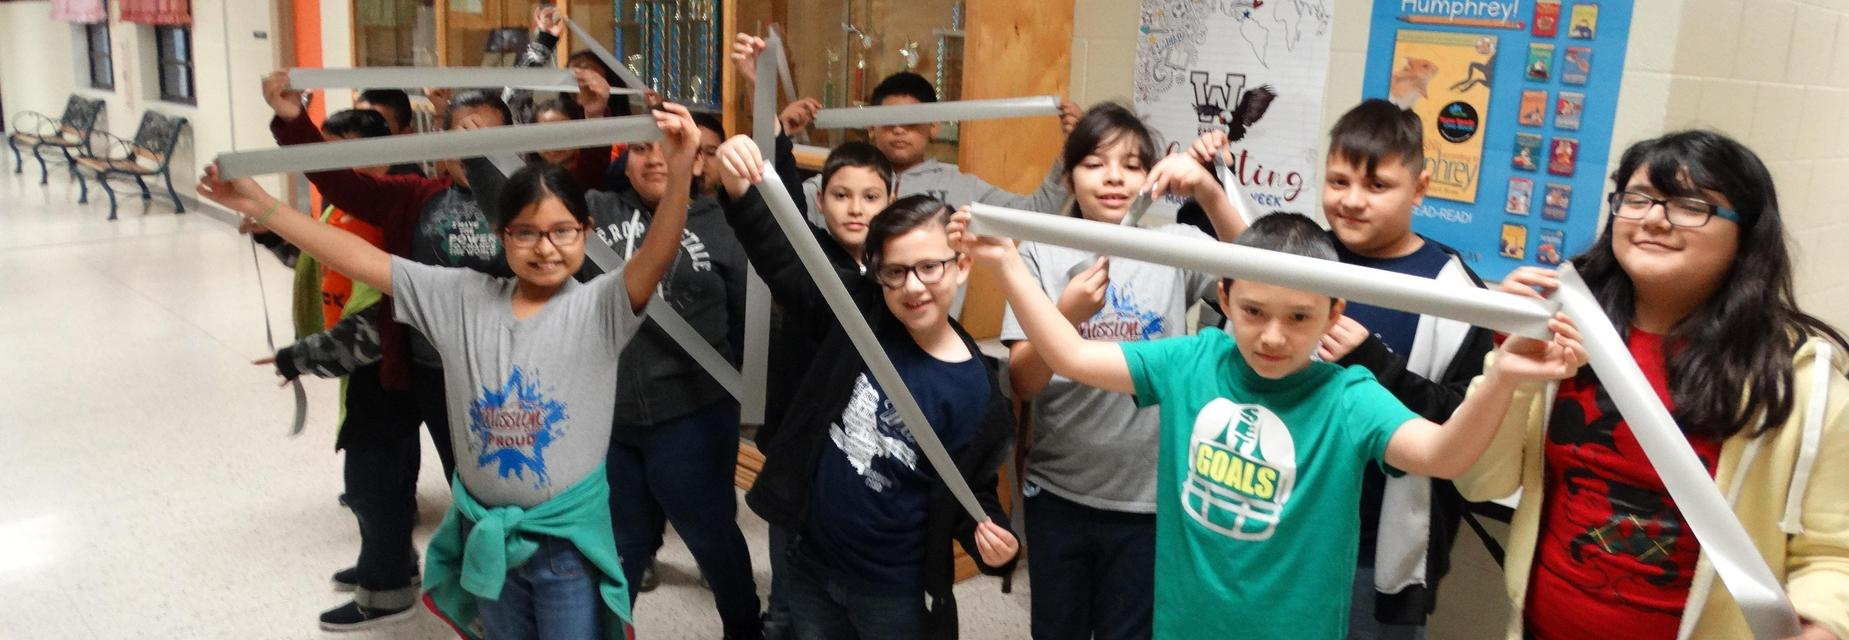 4th graders ready with duct tape